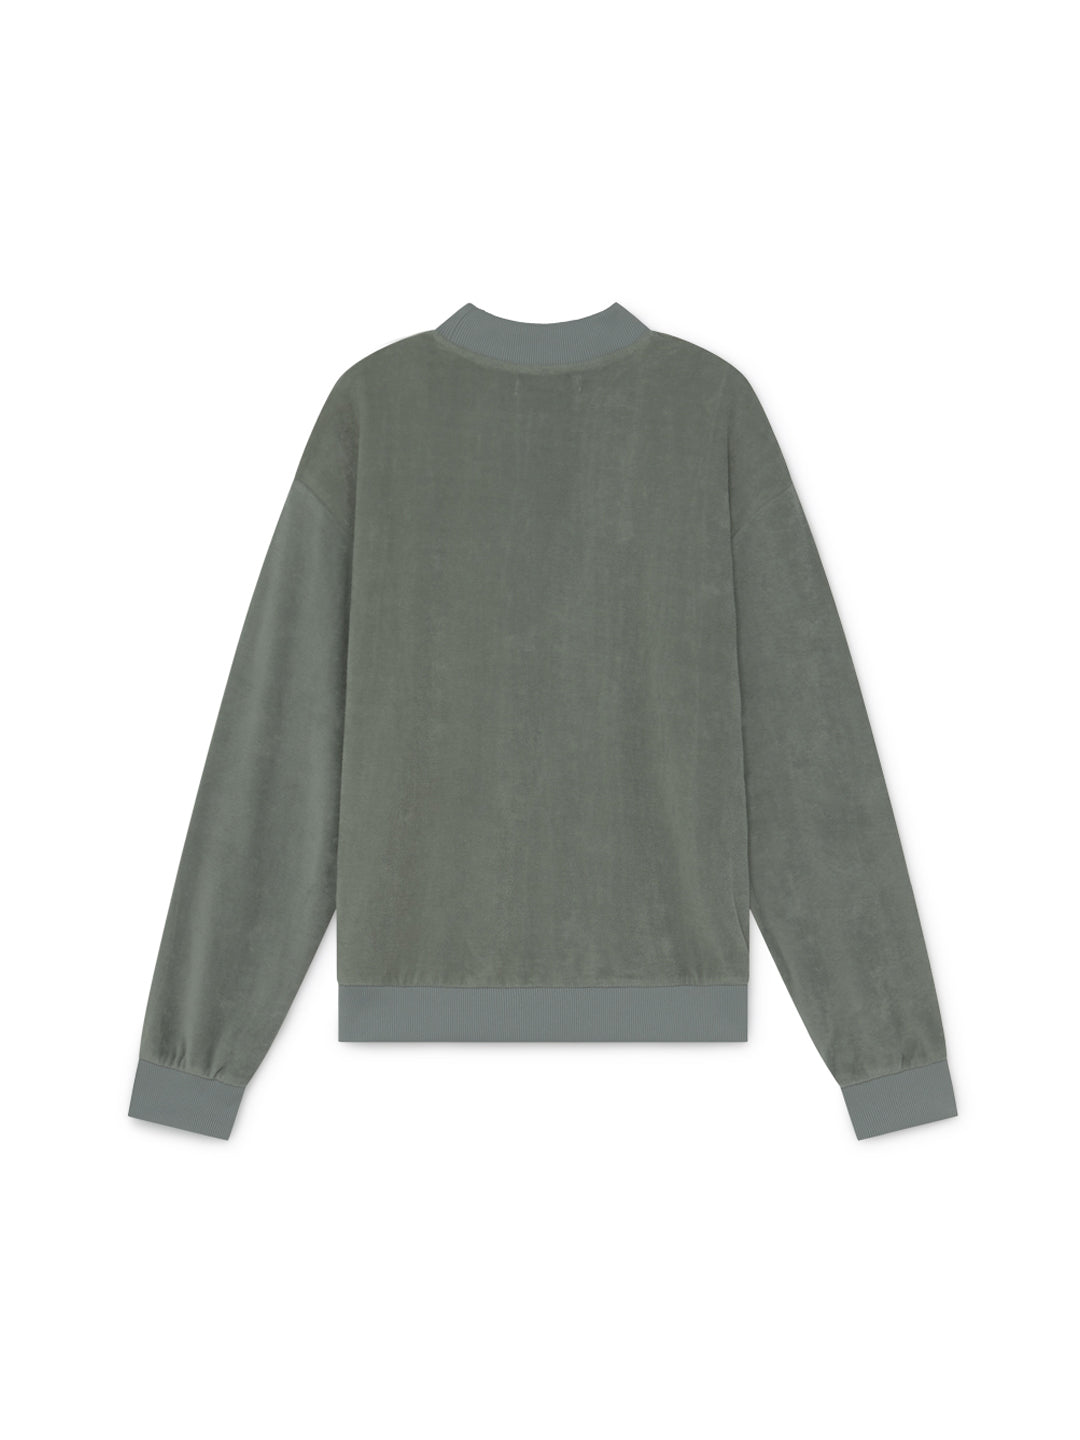 TWOTHIRDS Sweat: Kerguelen - Washed Green